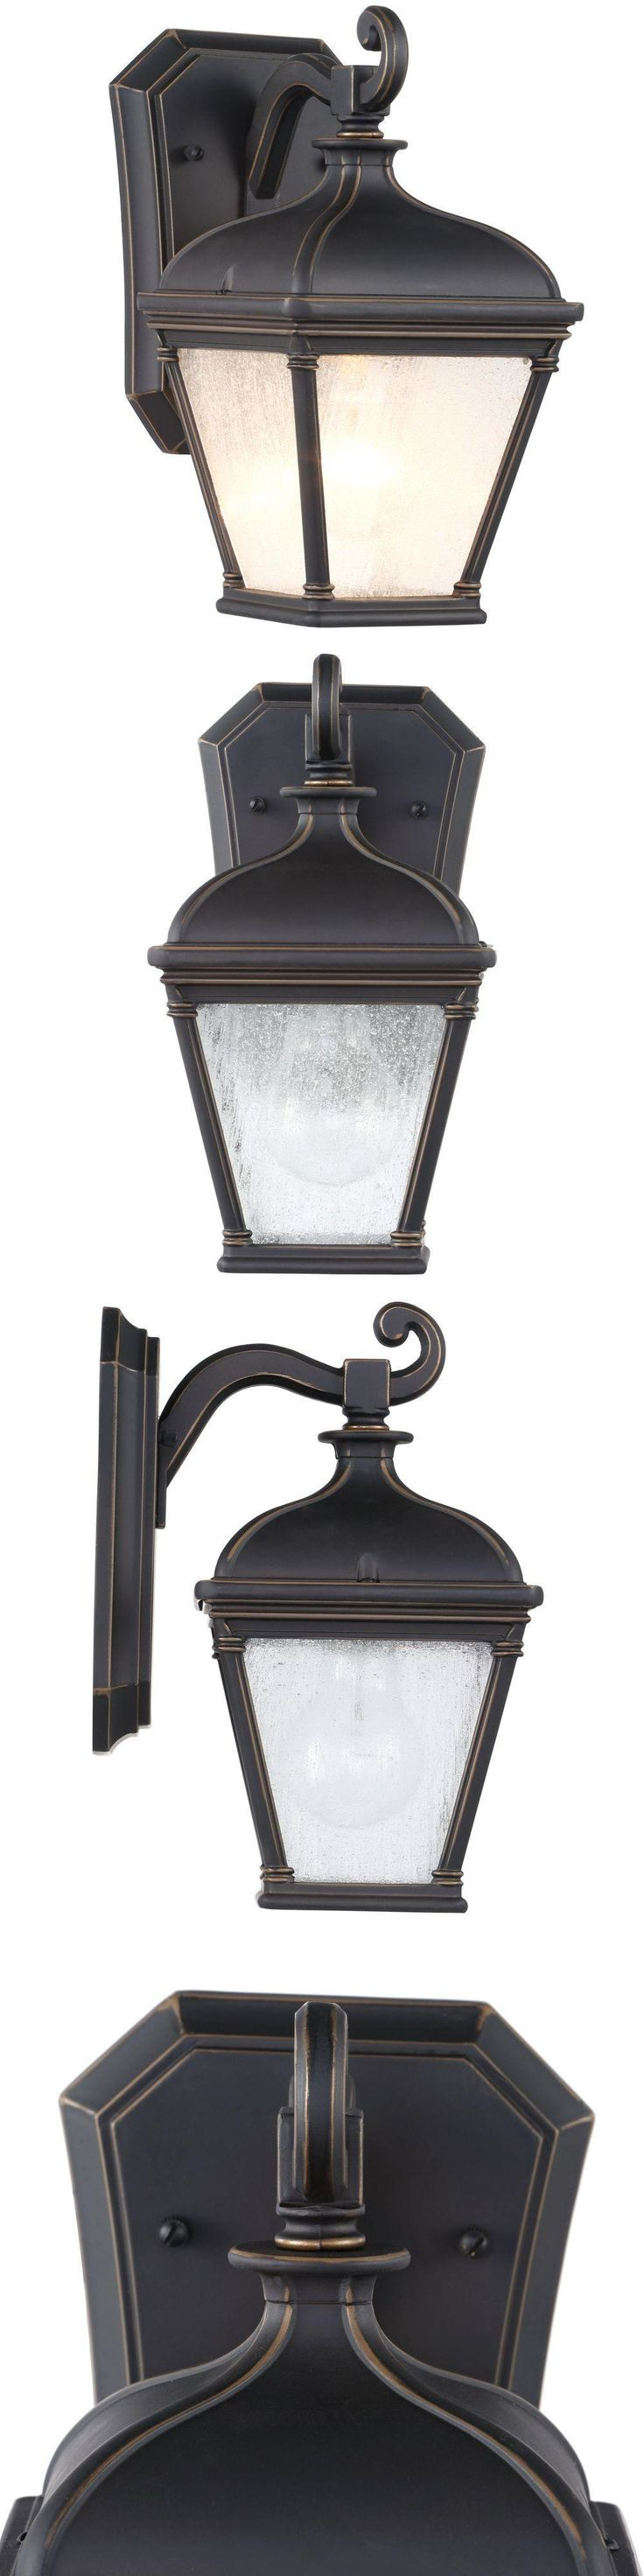 Outdoor Wall and Porch Lights 94939: Hampton Bay 23081 Malford Wall-Mount Outdoor Dark Rubbed Bronze Lantern -> BUY IT NOW ONLY: $69.99 on eBay!